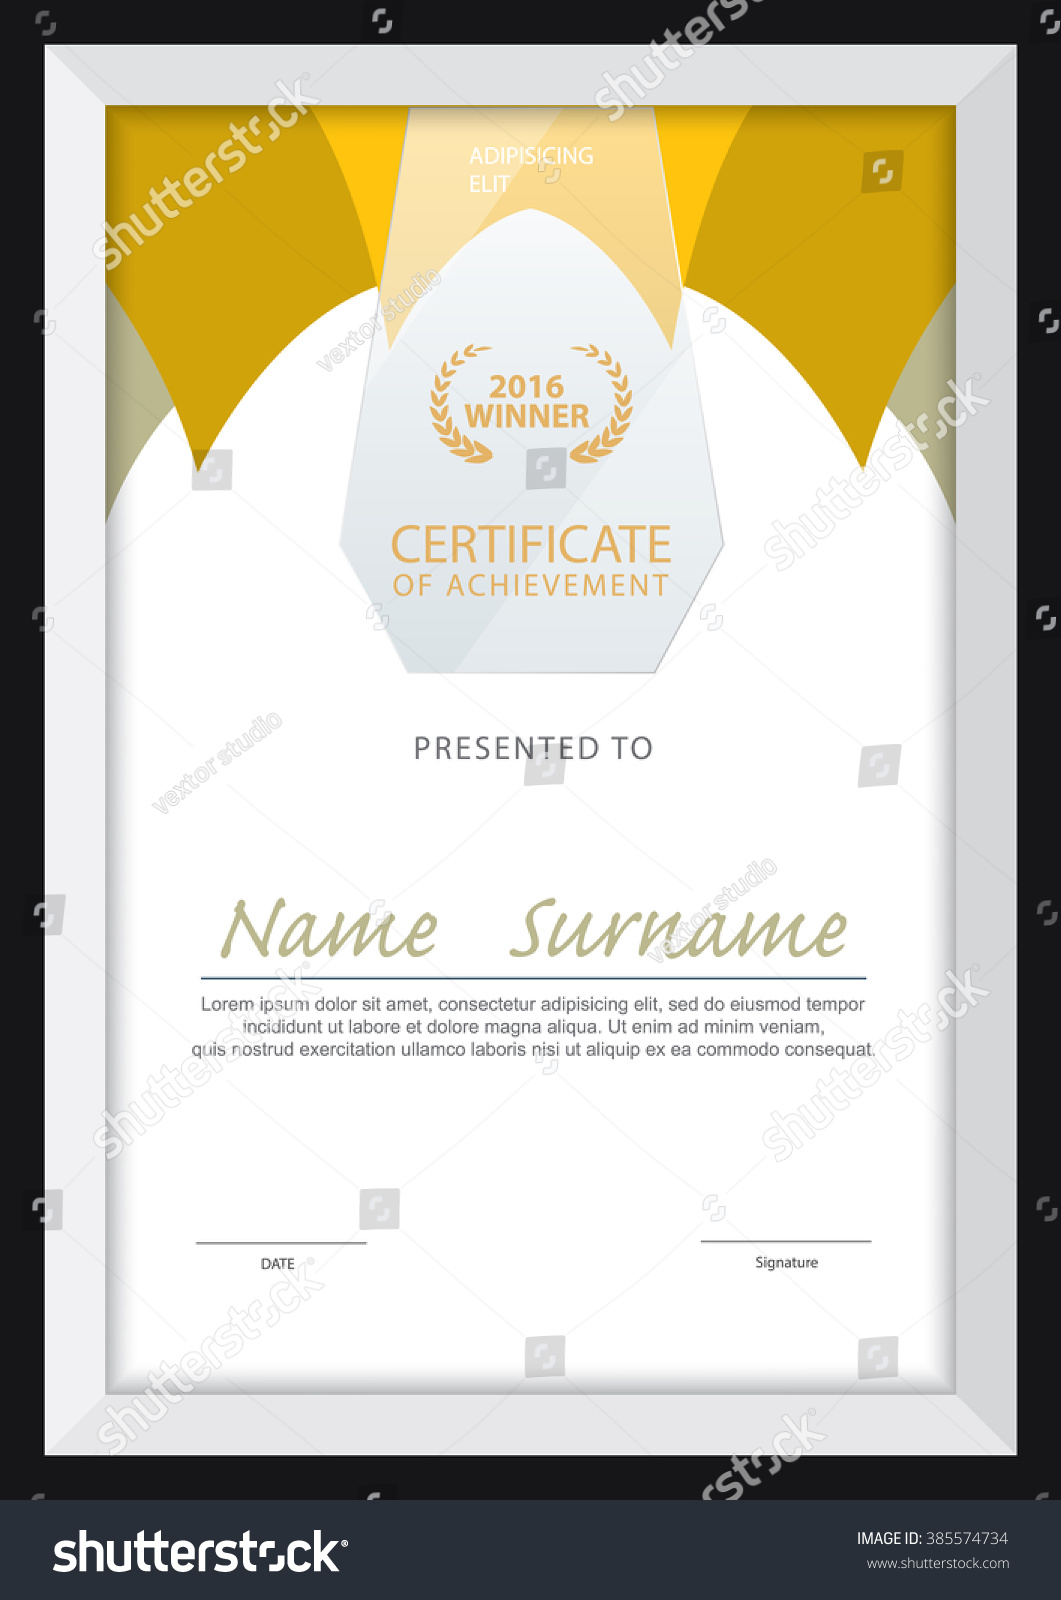 Navy retirement certificate template 100 microsoft proposal certificate template a4 choice image certificate design and template avopix 385574734 certificate template a4 navy retirement certificate template 100 yadclub Images